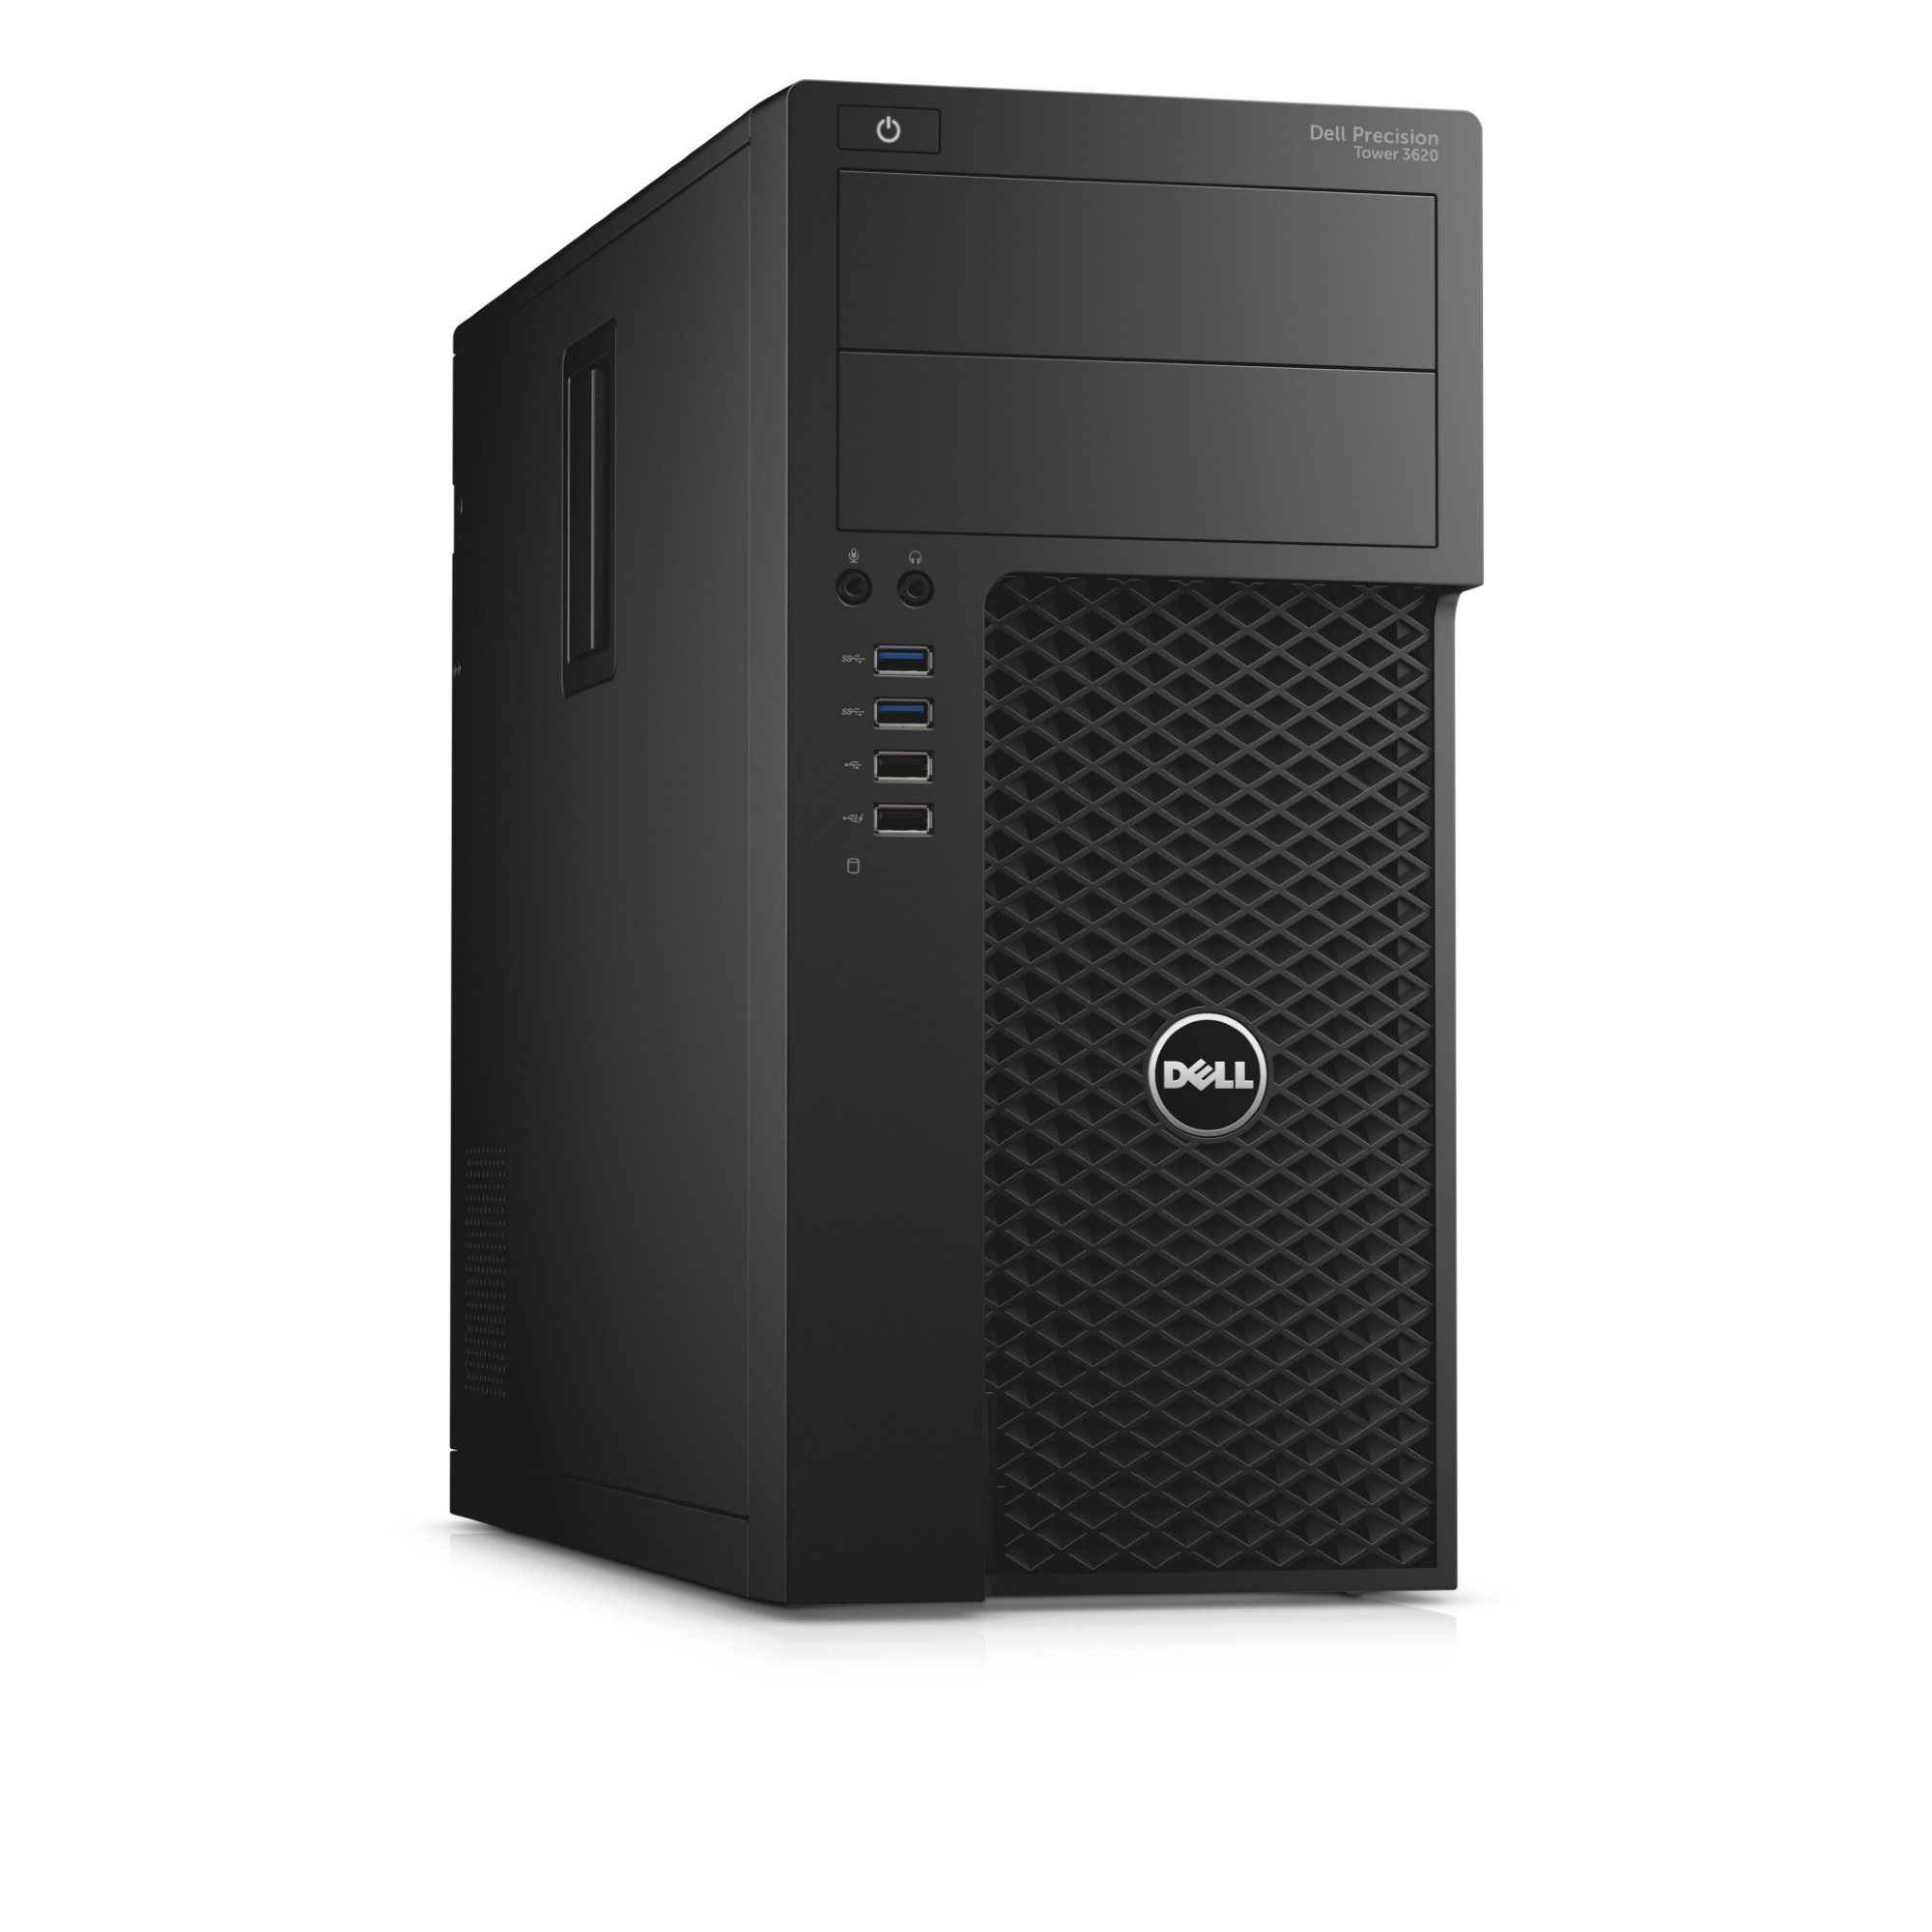 DELL 3HHD7 PRECISION T3620 3.4GHZ I7-6700 MINI TOWER BLACK WORKSTATION